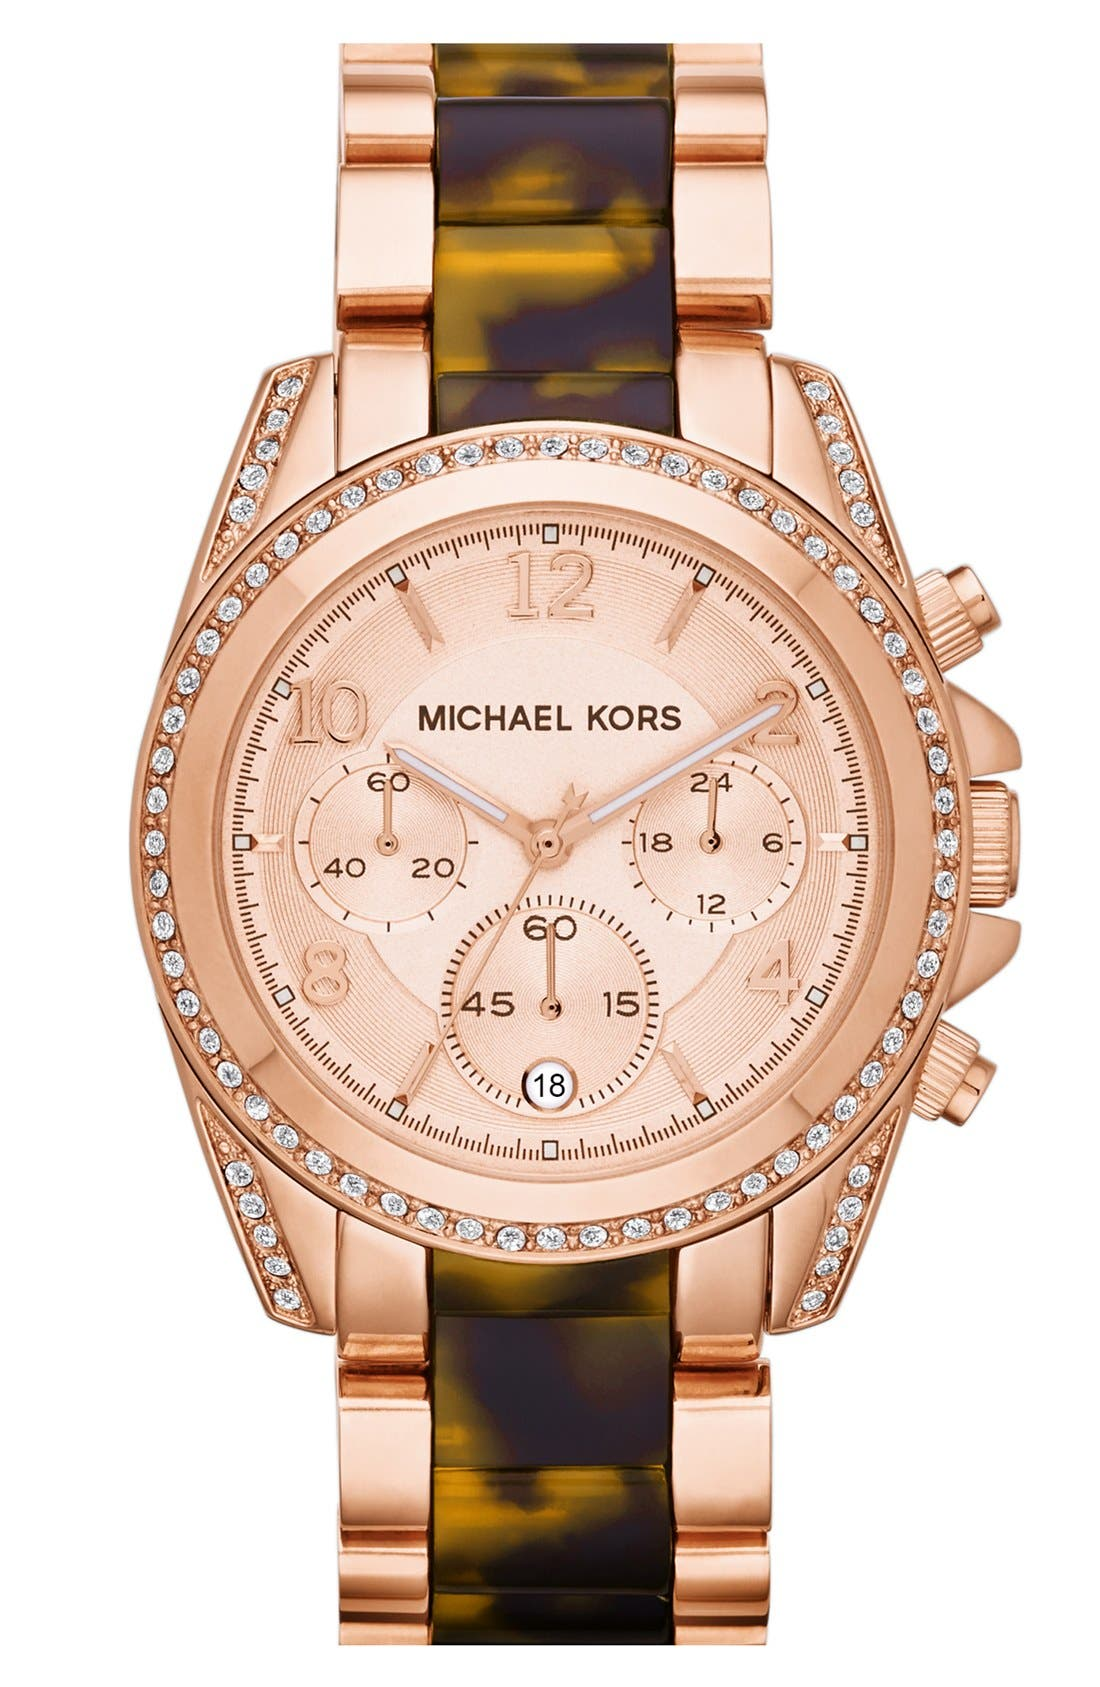 Main Image - Michael Kors 'Blair' Two-Tone Bracelet Watch, 39mm